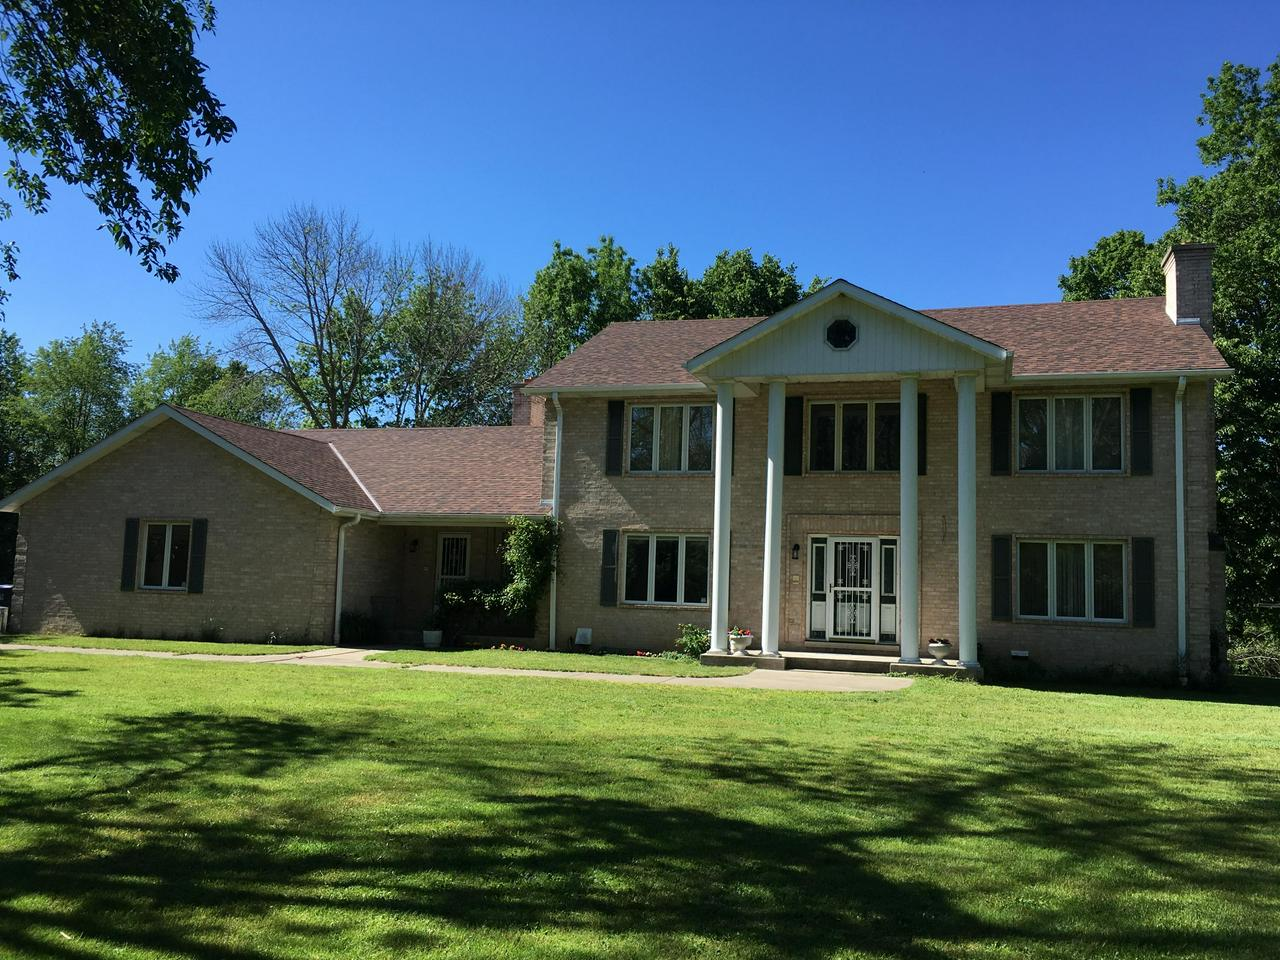 Homes For Sale 53140 Houses For Sale In Kenosha Wi